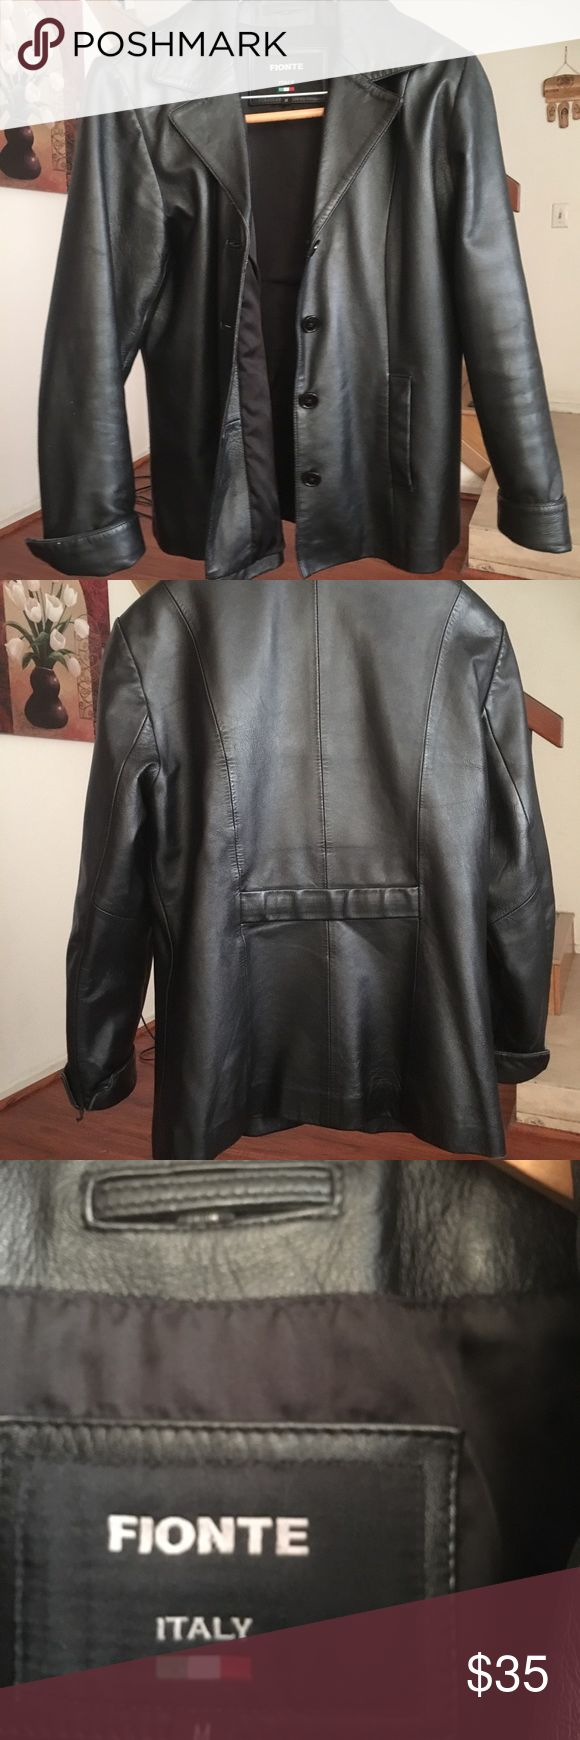 Italian leather jacket, in excellent condition! Beautiful leather jacket from Italy! Looks new and in excellent condition! Fionte Jackets & Coats